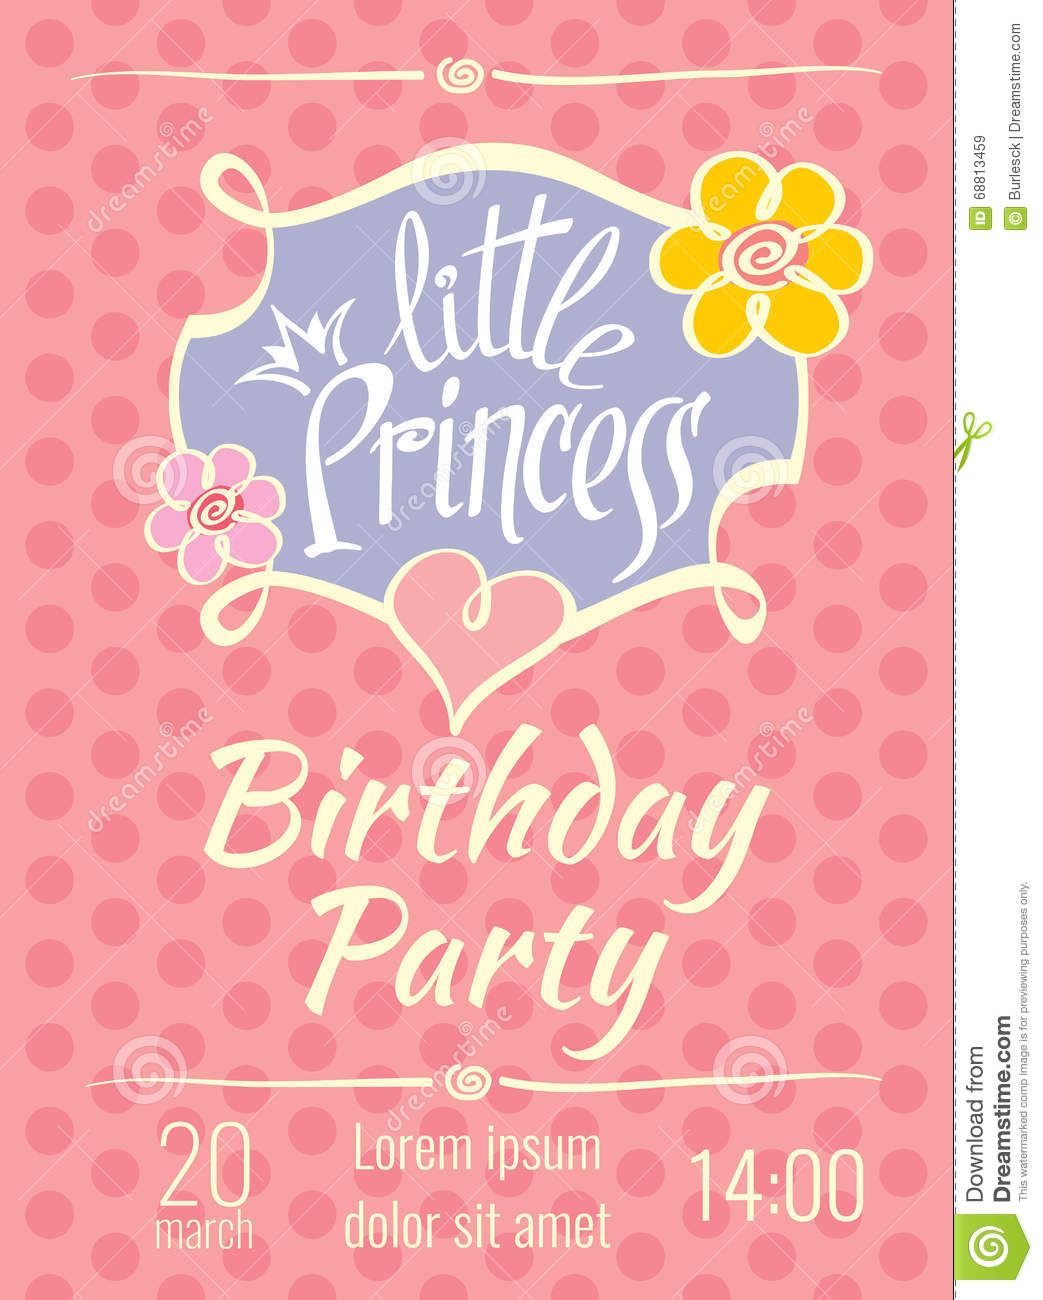 Birthday invitation cards template yelomphonecompany little princess birthday party vector poster or invitation card birthday invitation cards template stopboris Images